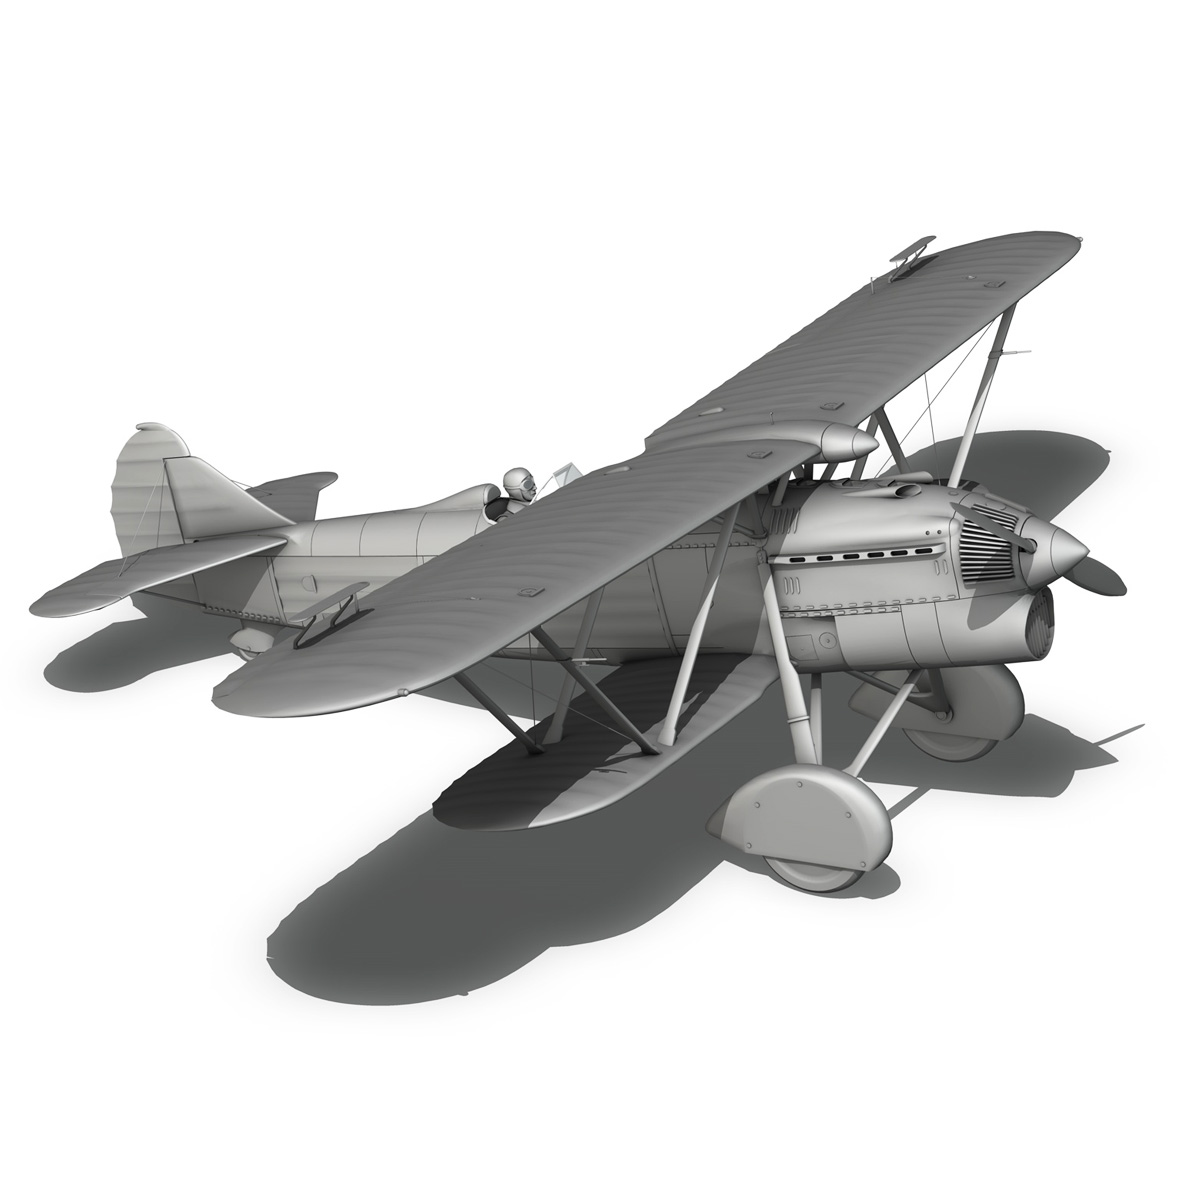 fiat cr.32 – italy airforce – 160 squadriglia 3d model fbx c4d lwo obj 268121